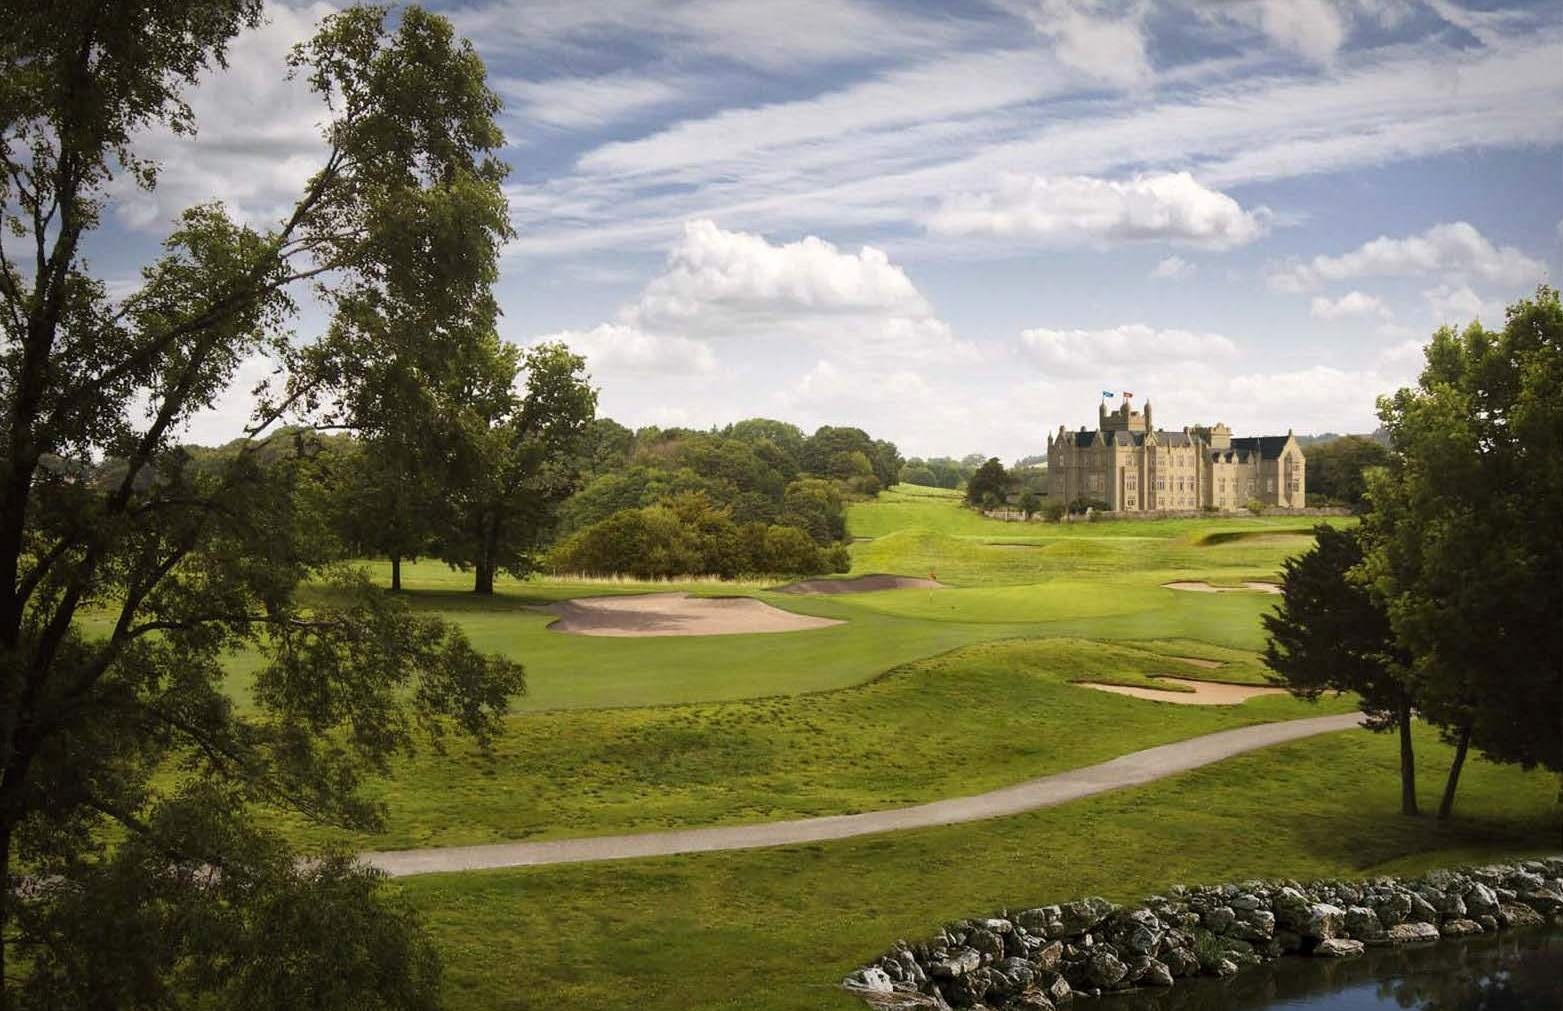 An artist's impression of the first hole at the Ury Estate golf course